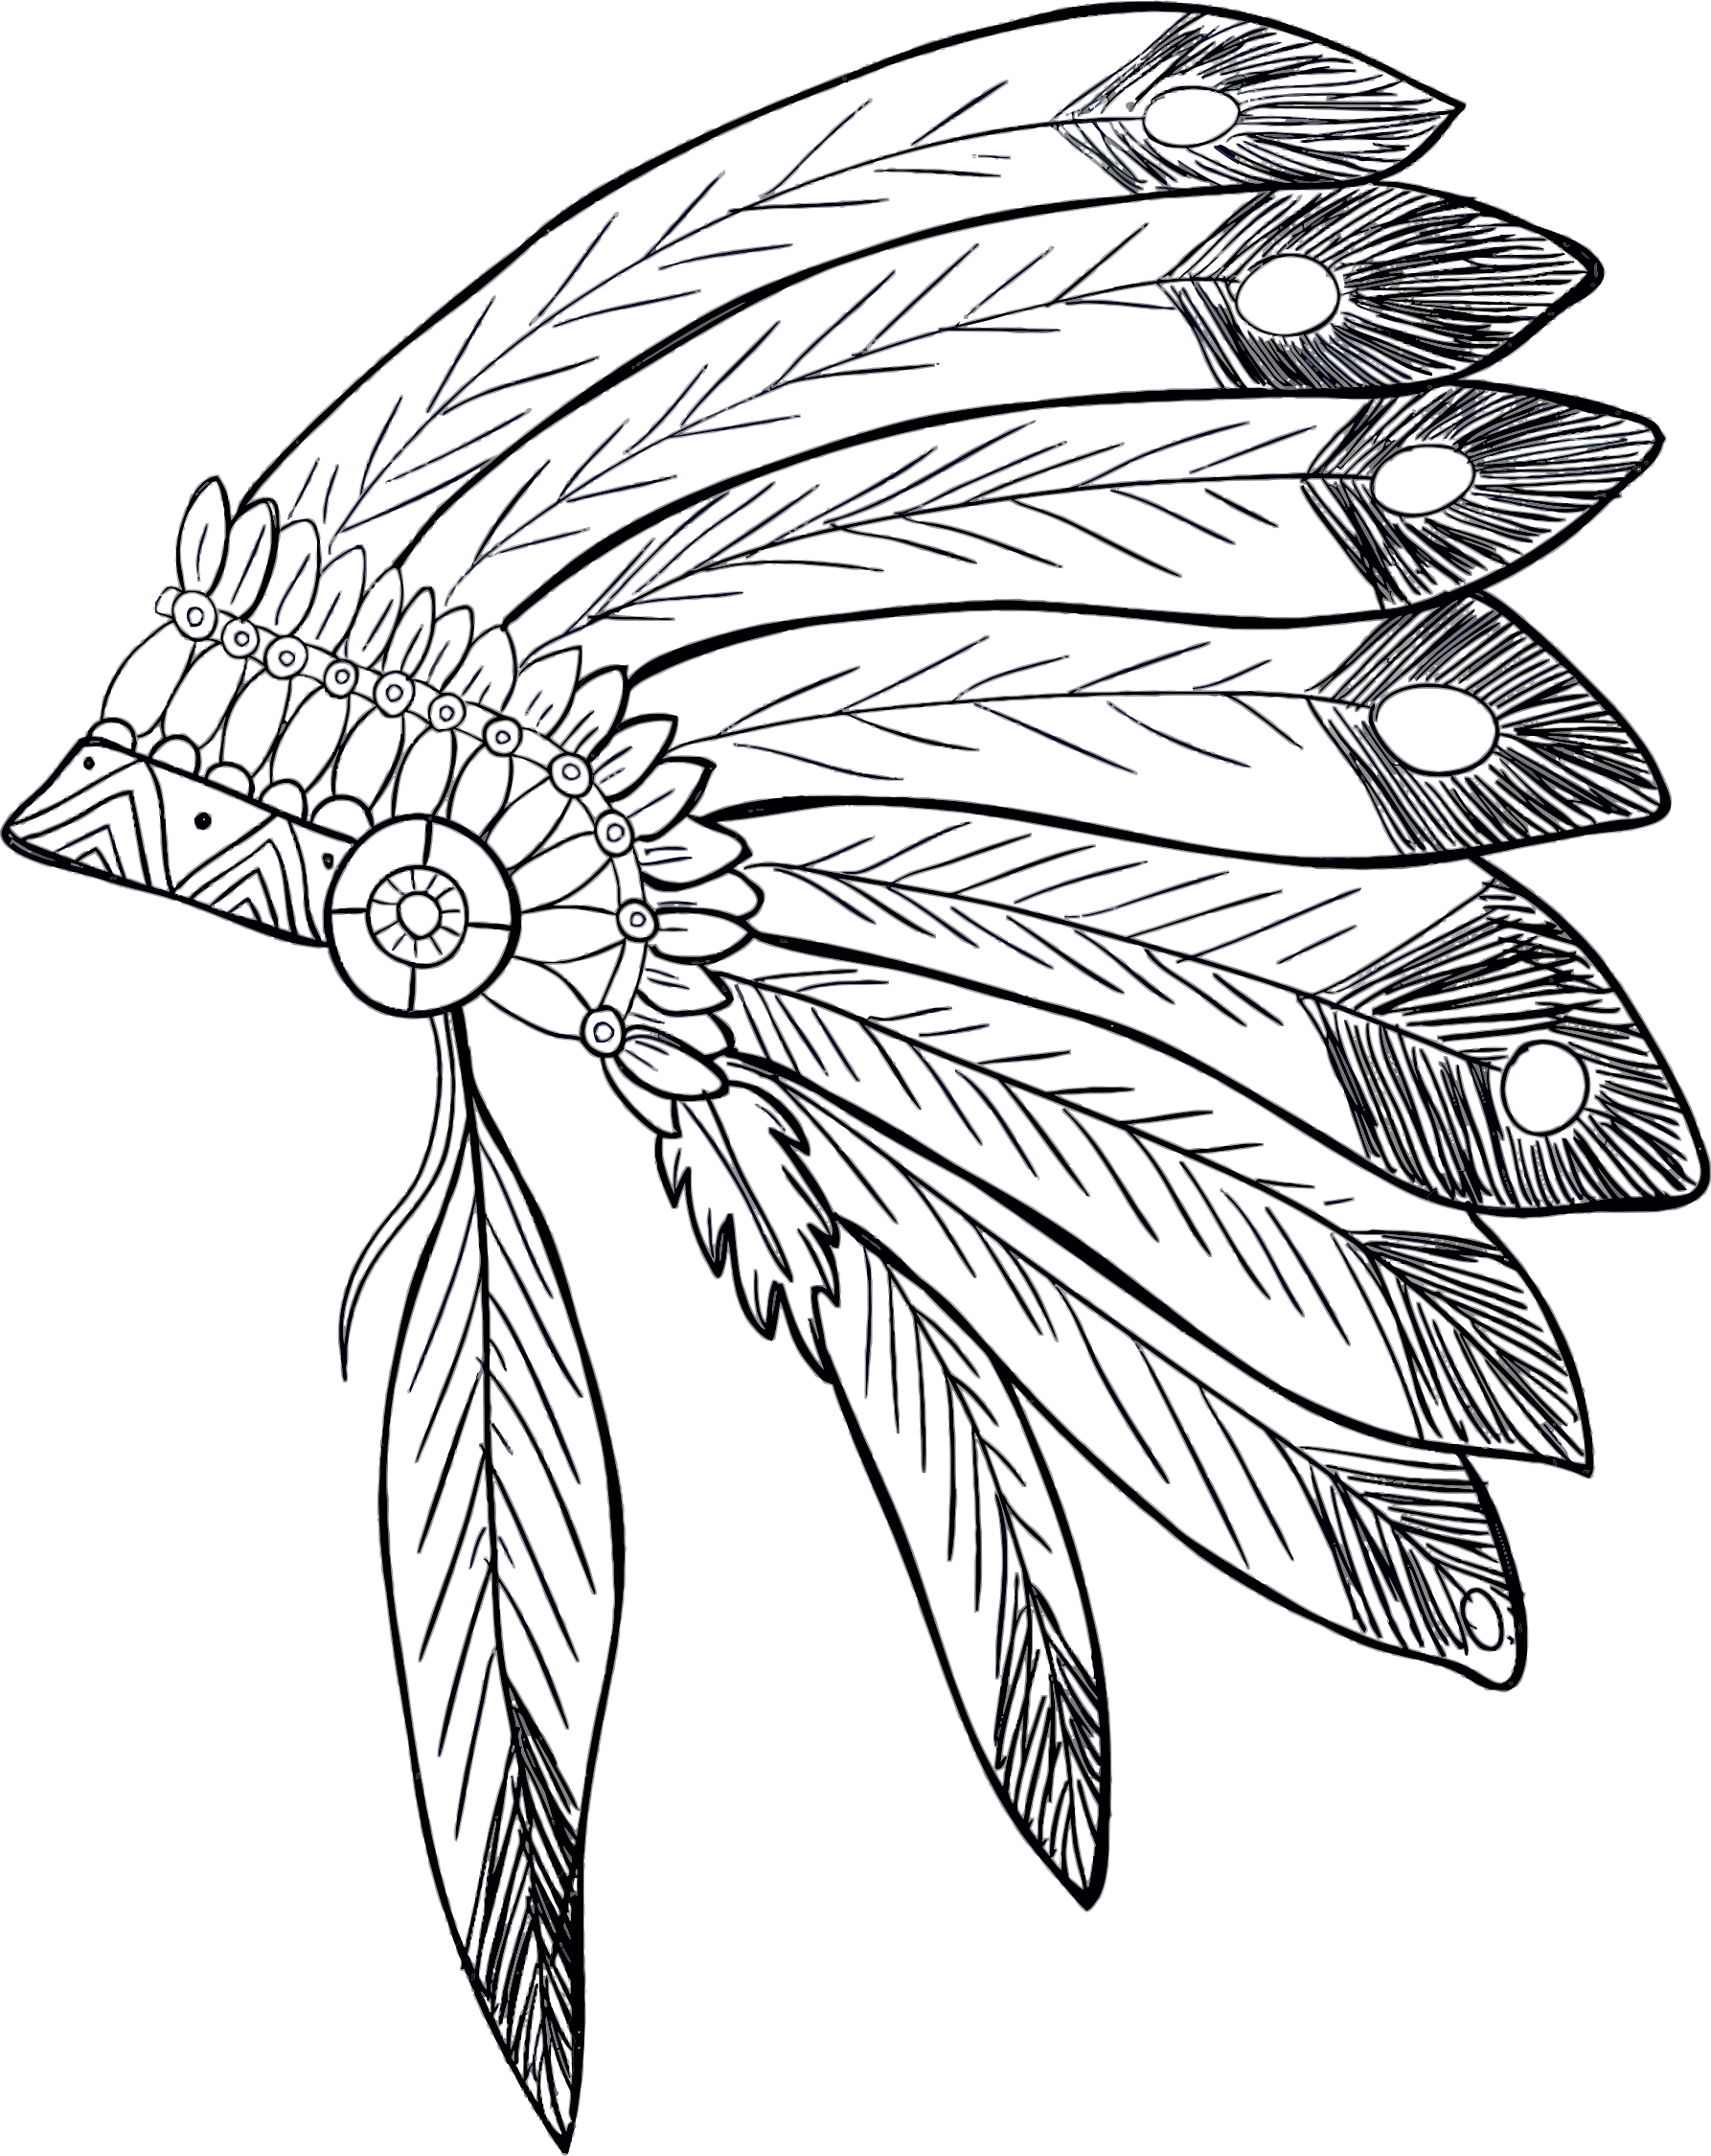 Apache drawing feather. Native american headdress at